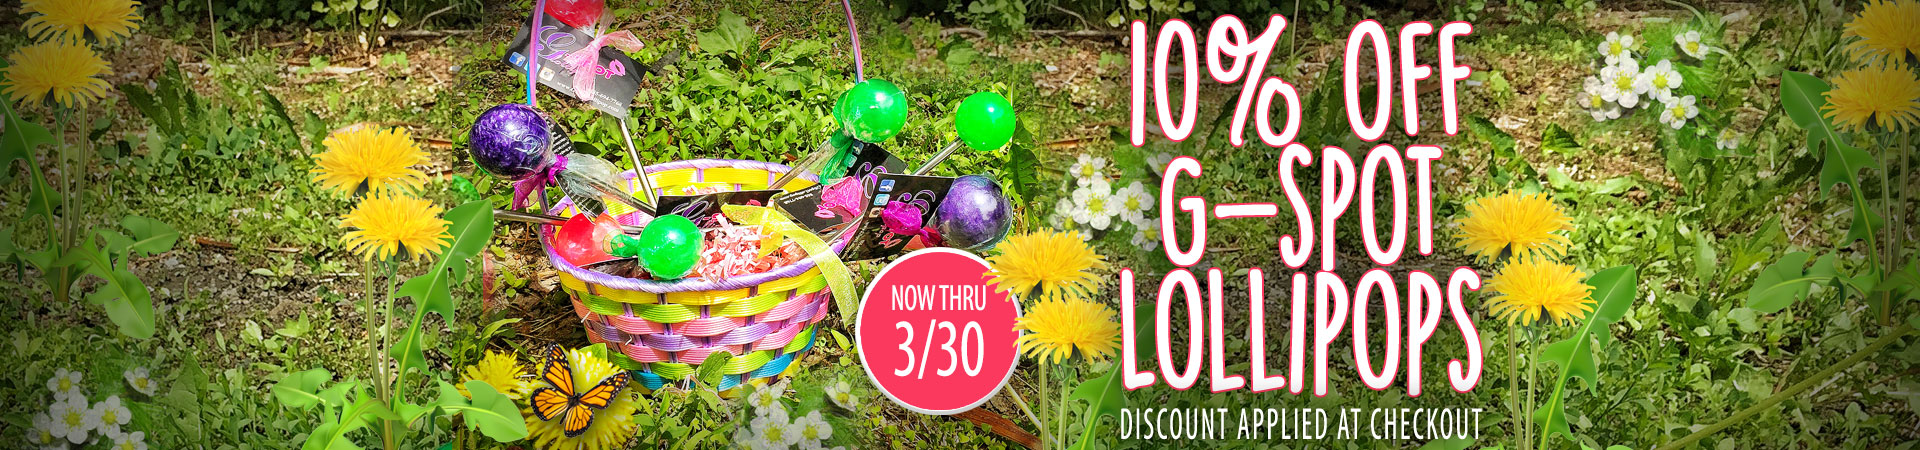 10% Off G-Spot Lollipops - Now Thru 3/30 - Discount Applied At Checkout